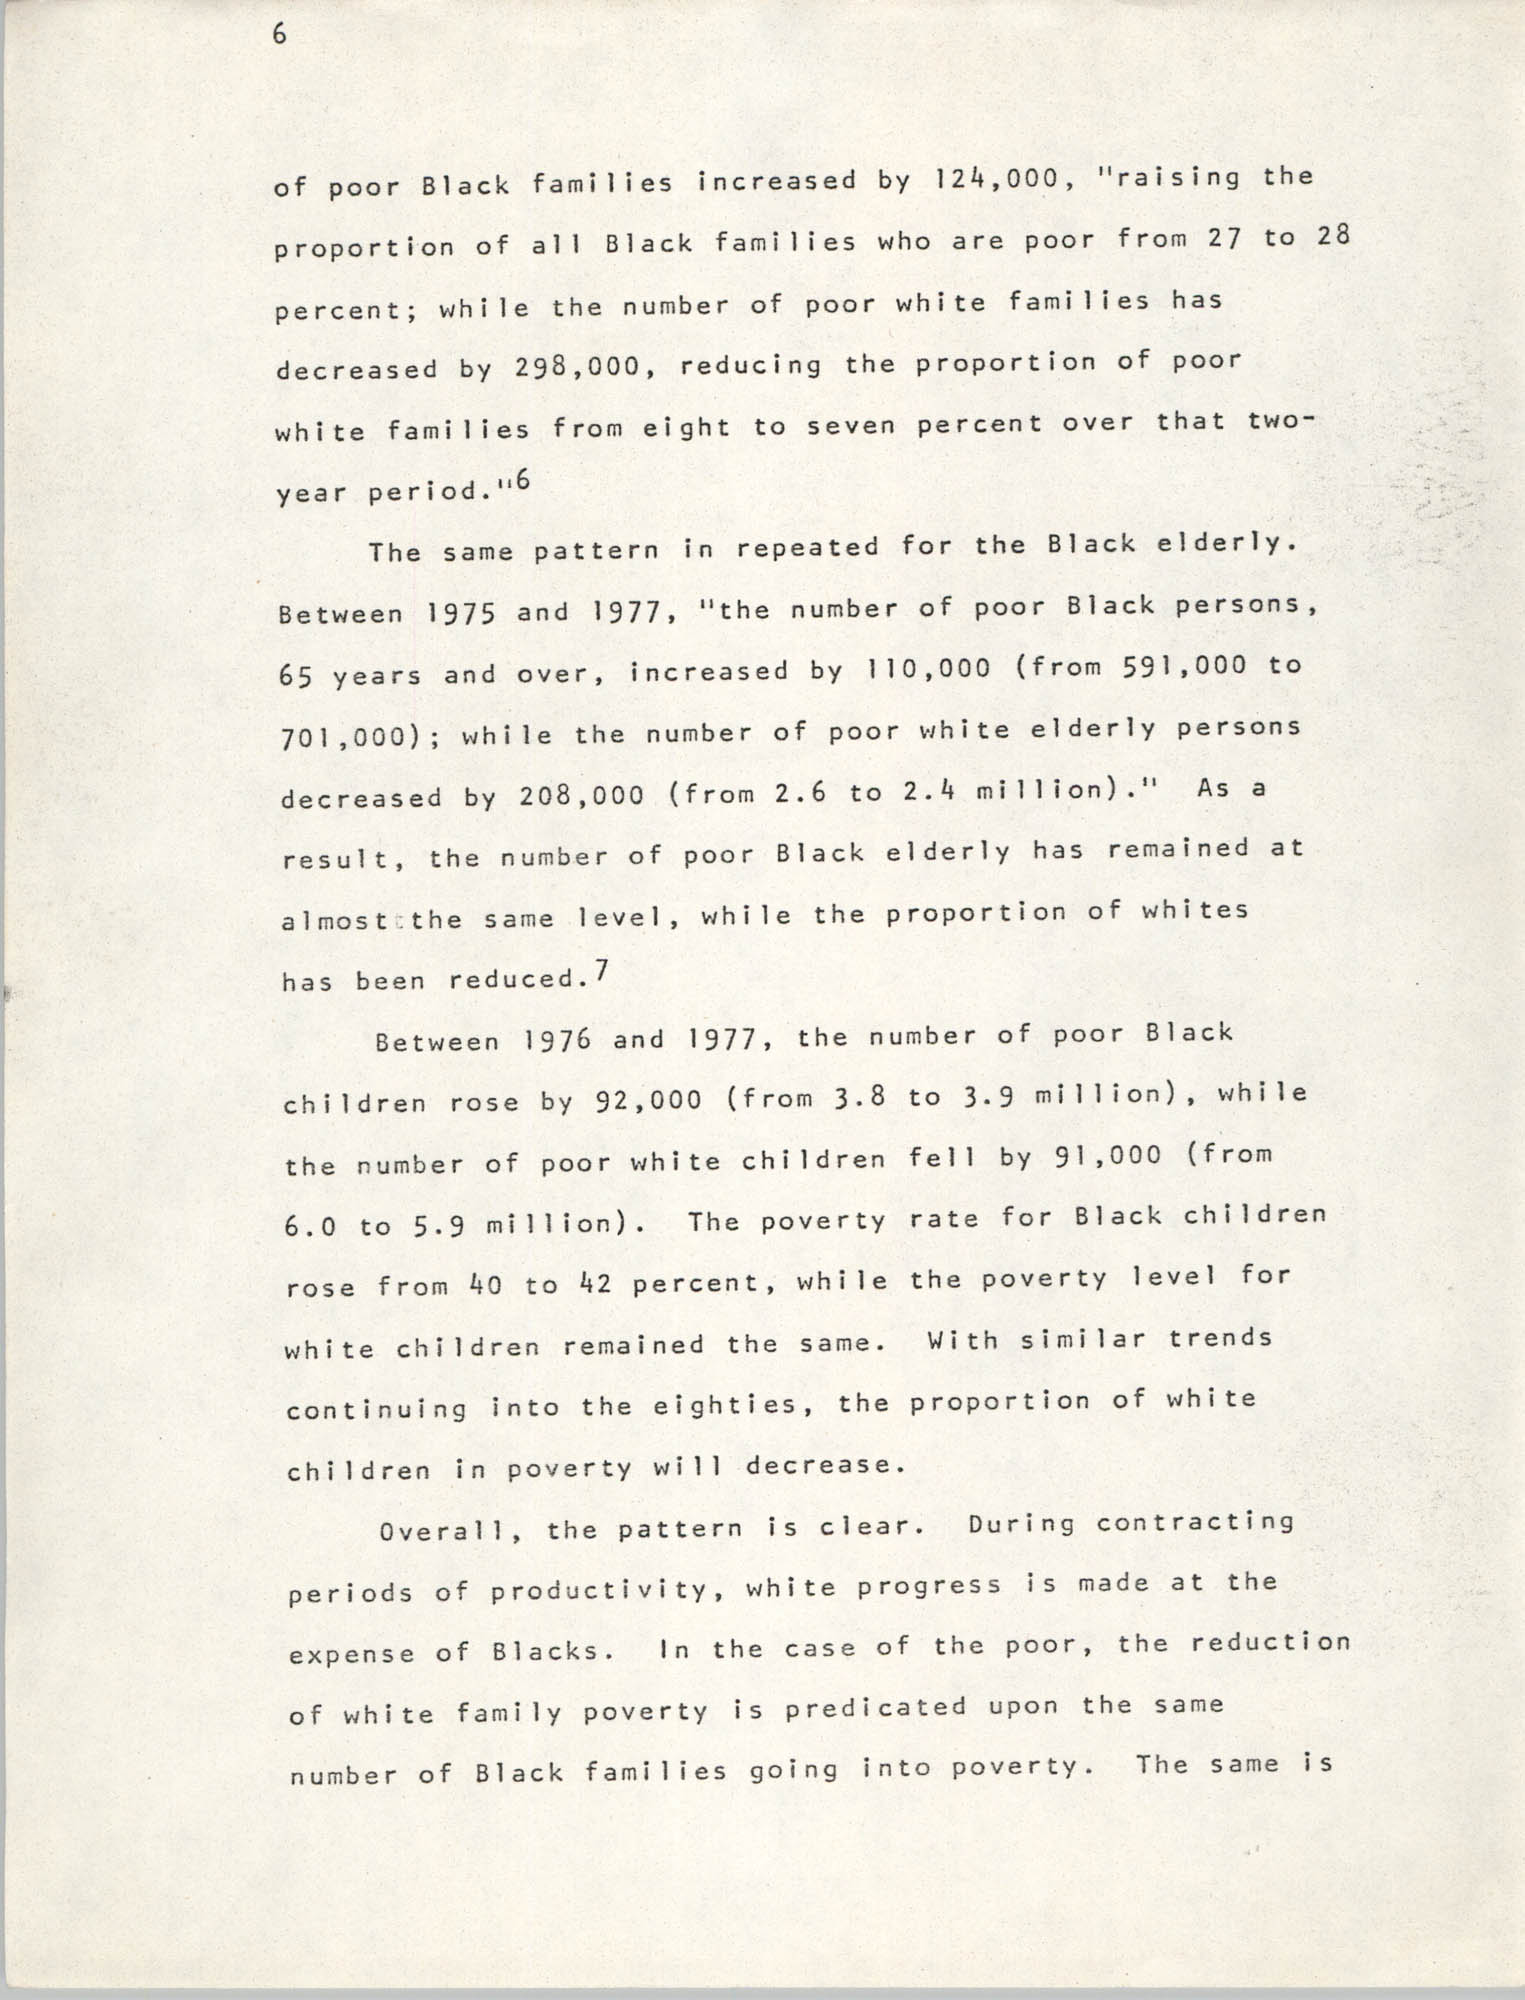 Pan-African Committee of the Black United Front, Page 6